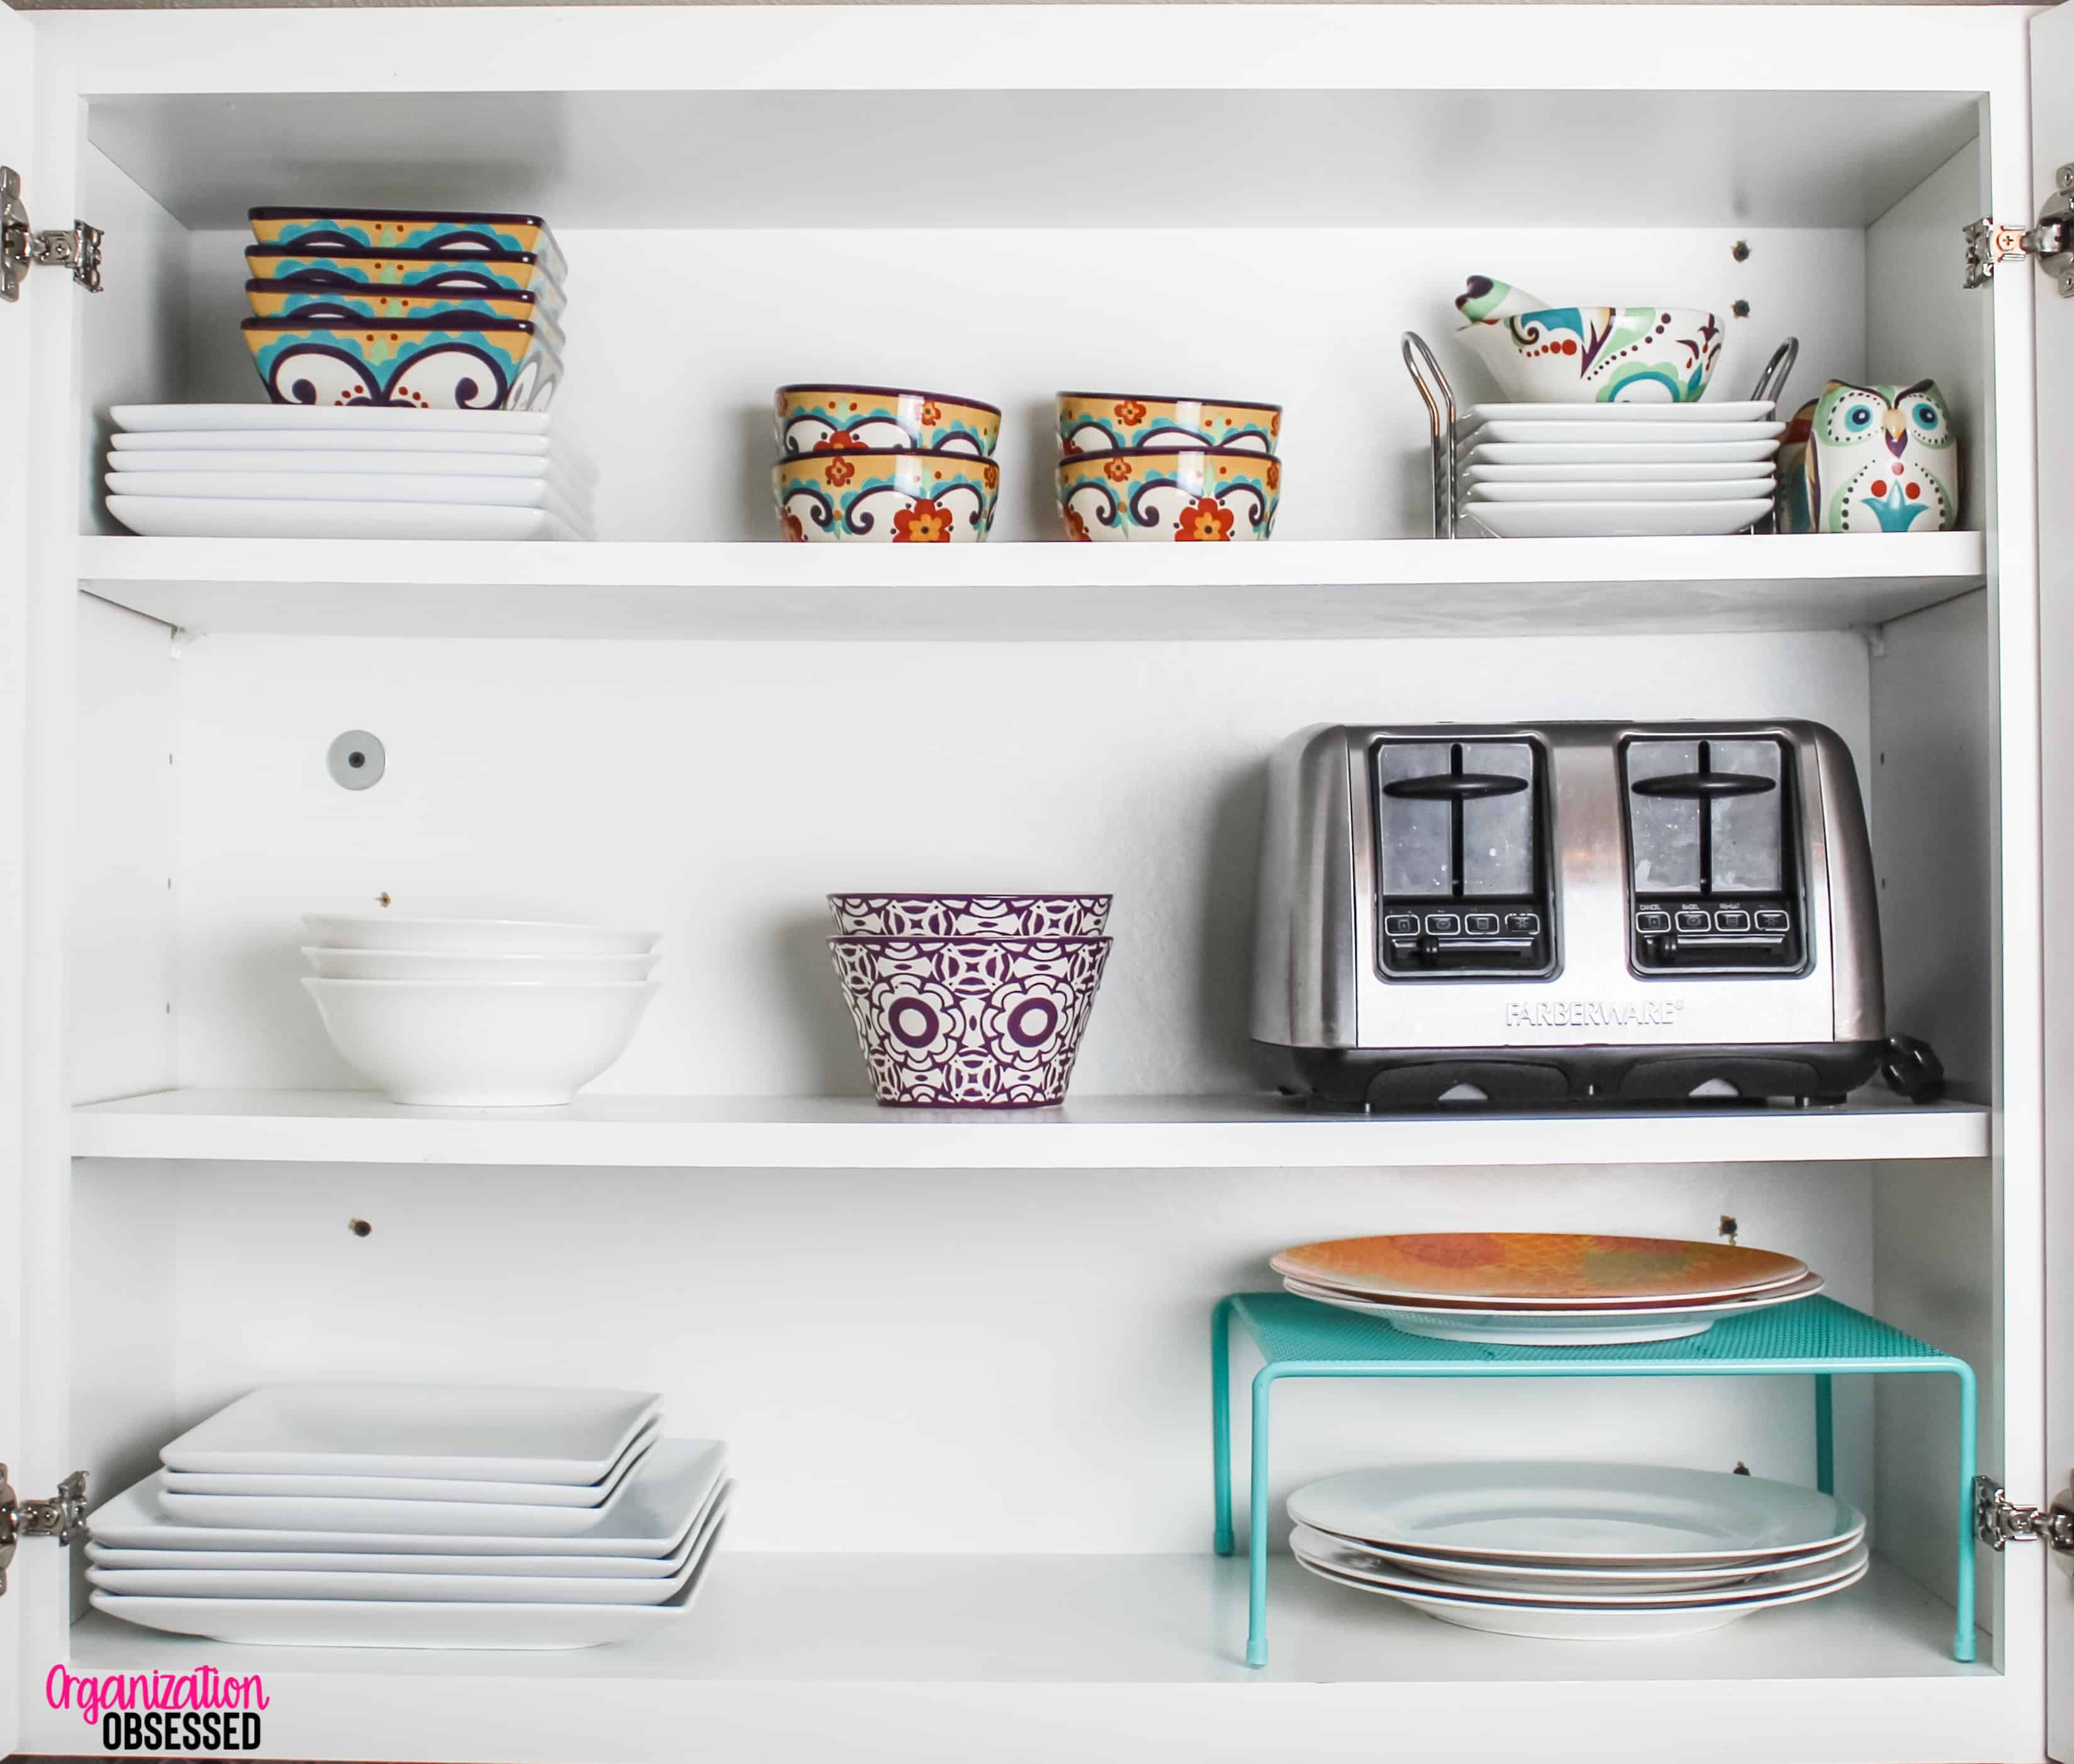 Cabinet Shelf Kitchen Organizer for less than $20